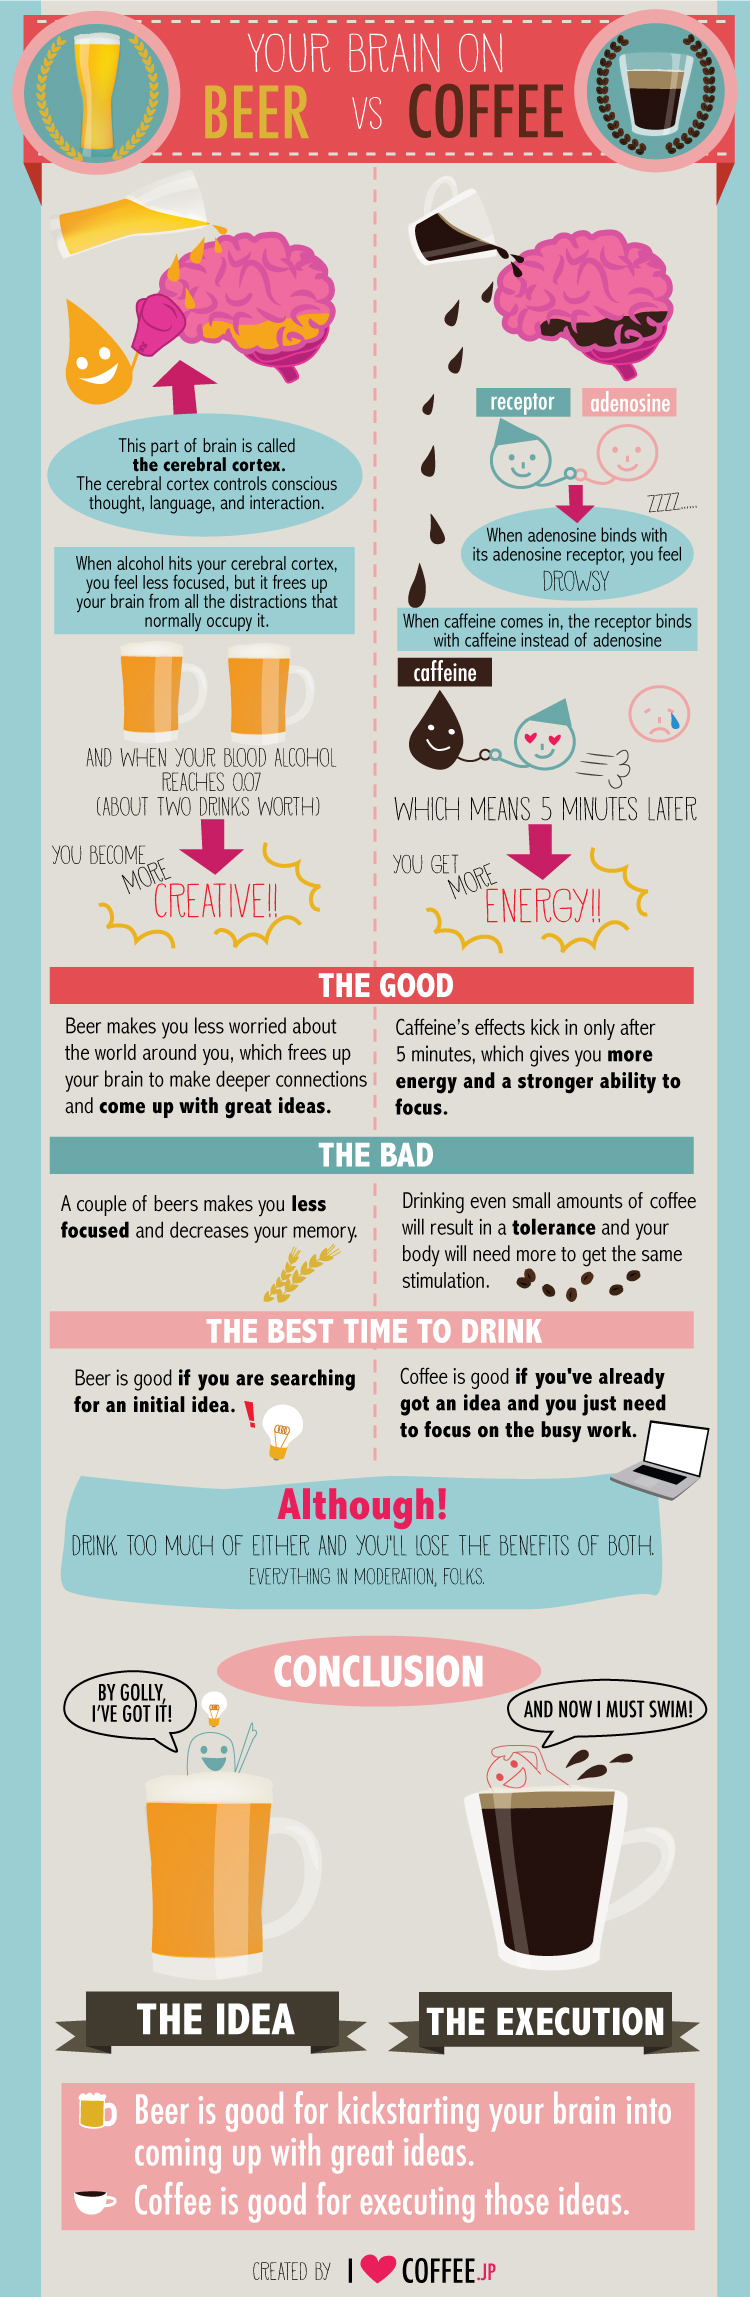 beer-coffee-brain-creativity-infographic